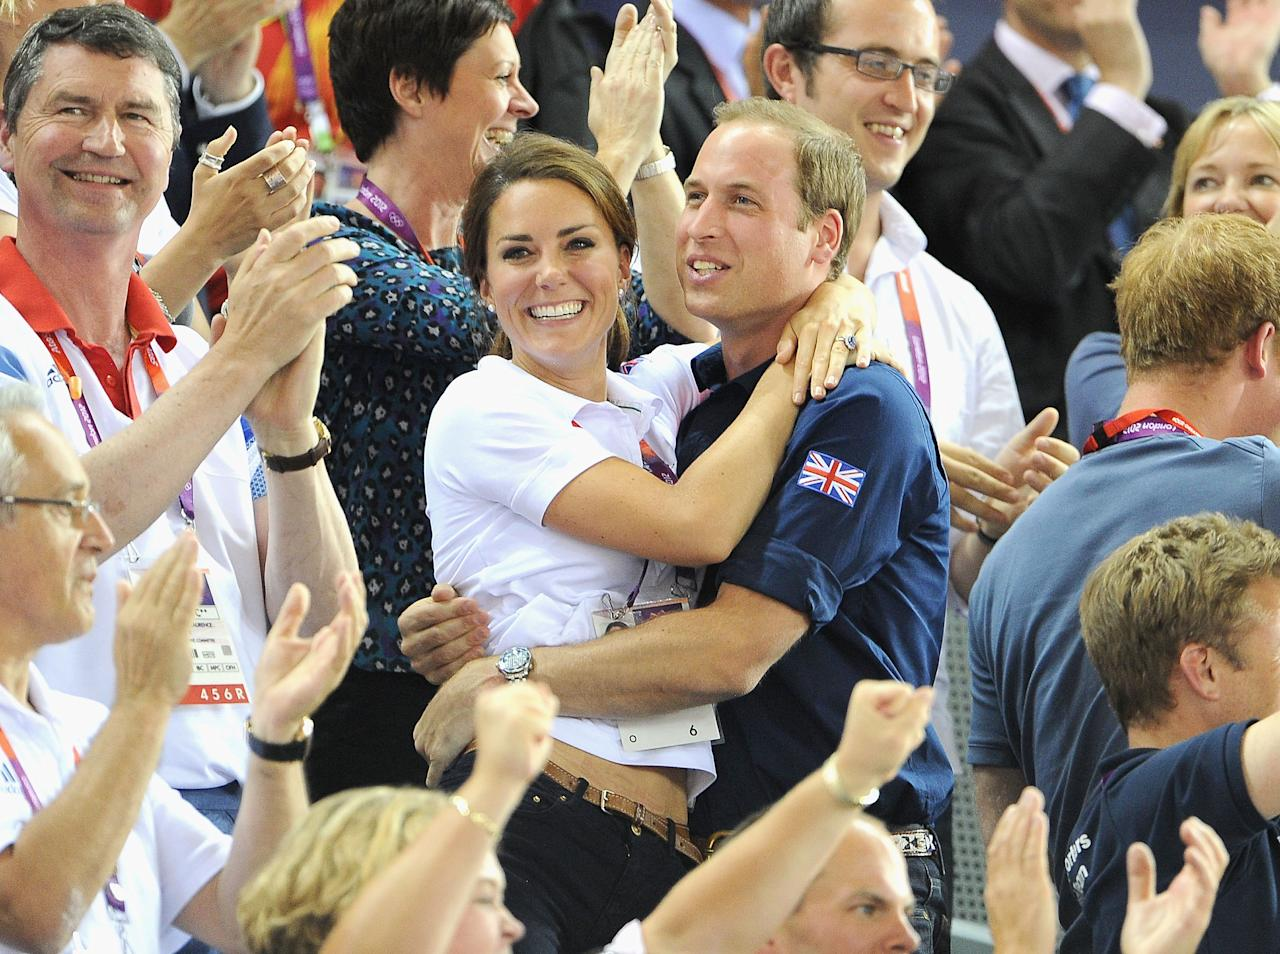 Catherine, Duchess of Cambridge and Prince William, Duke of Cambridge during Day 6 of the London 2012 Olympic Games at Velodrome on August 2, 2012 in London, England.  (Photo by Pascal Le Segretain/Getty Images)